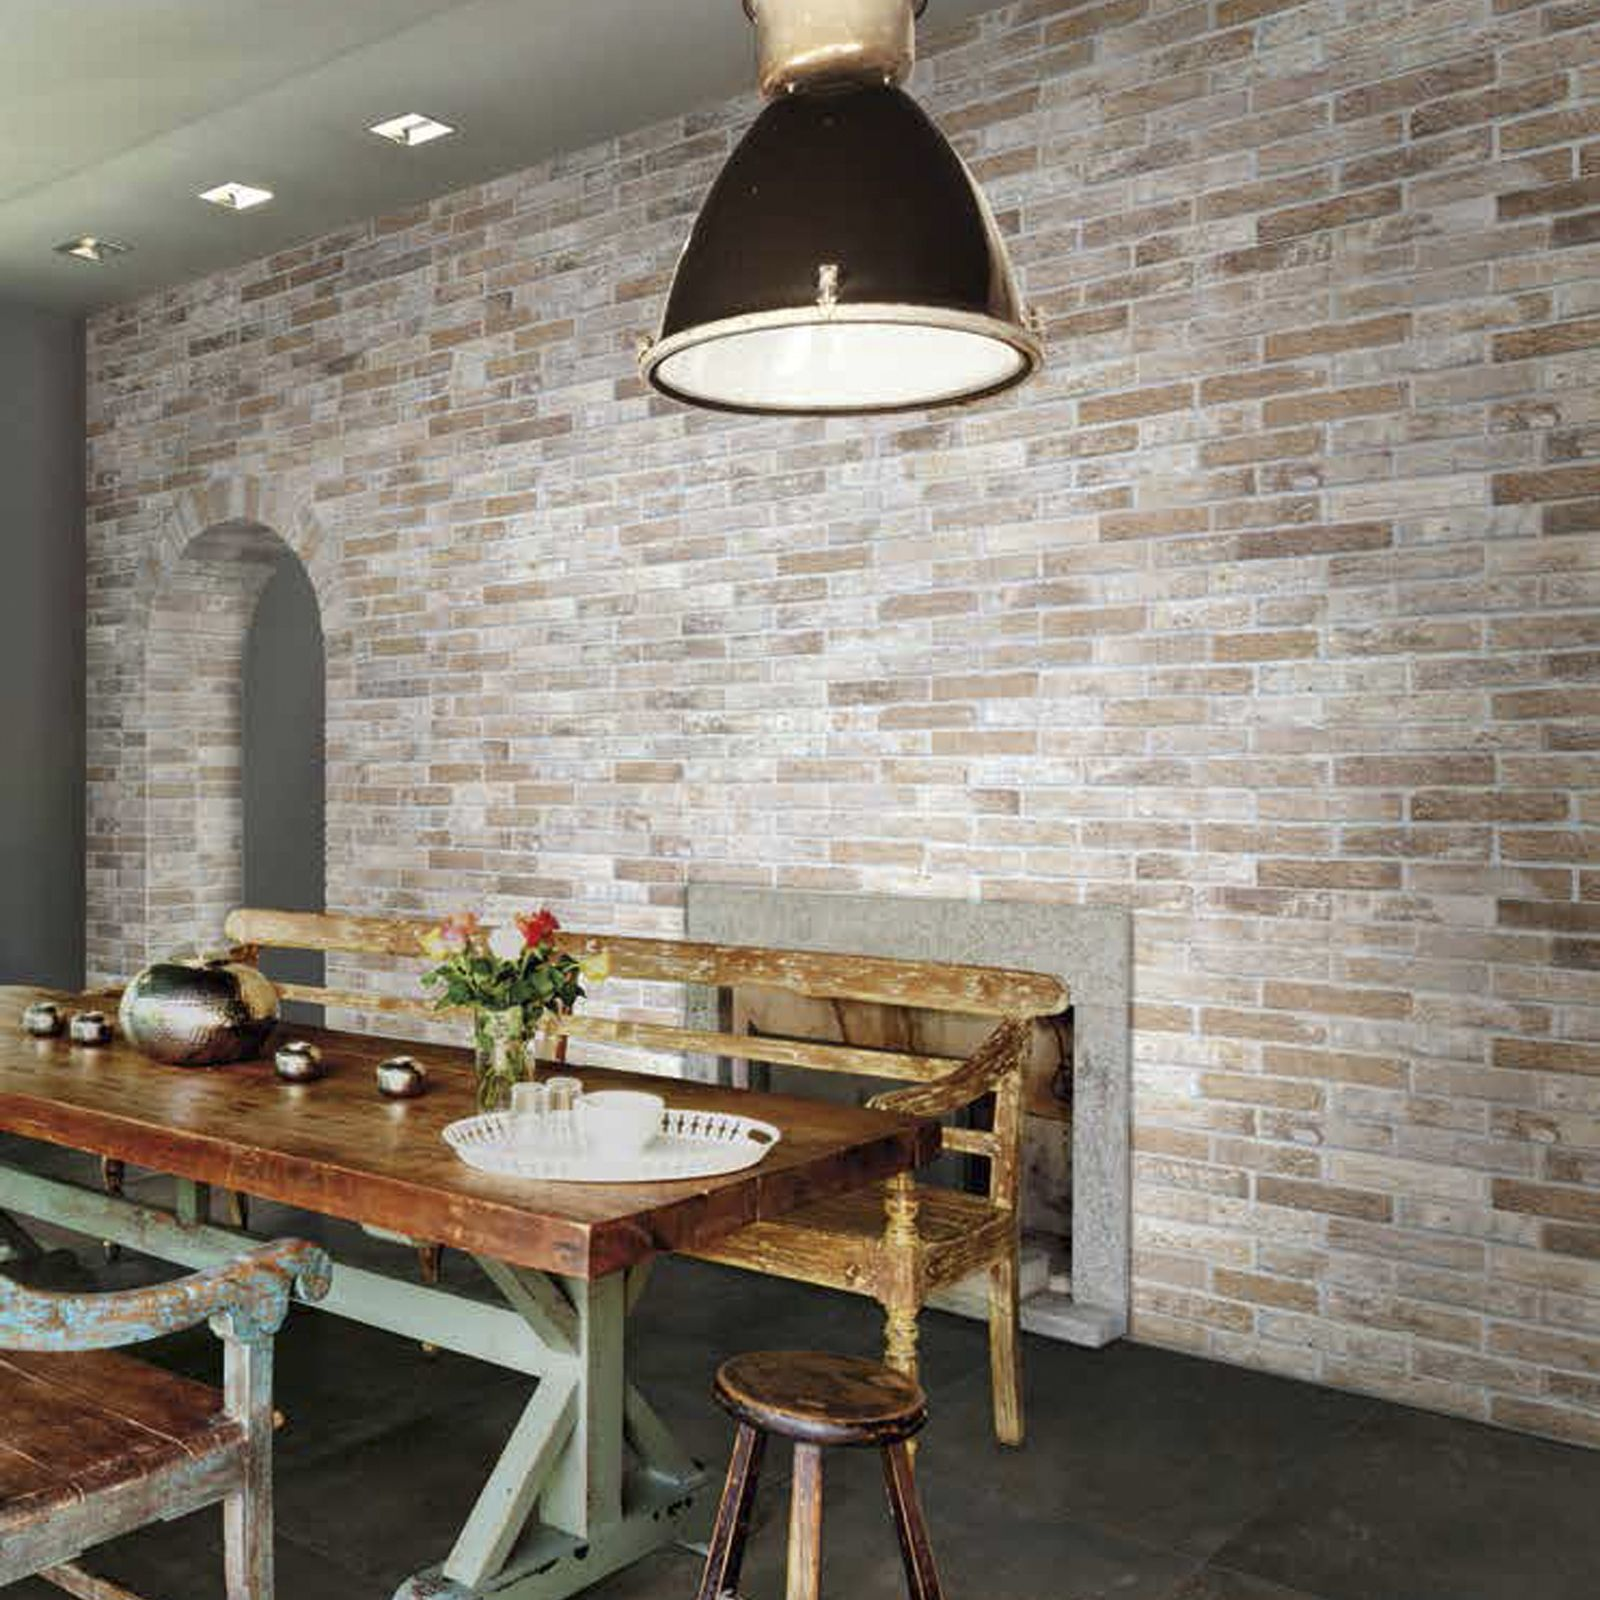 Rustic Country Vibes Dining Area With Brick Generation By Ceramica Rondine Kitchen Wall Tiles Dining Room Design Home Decor